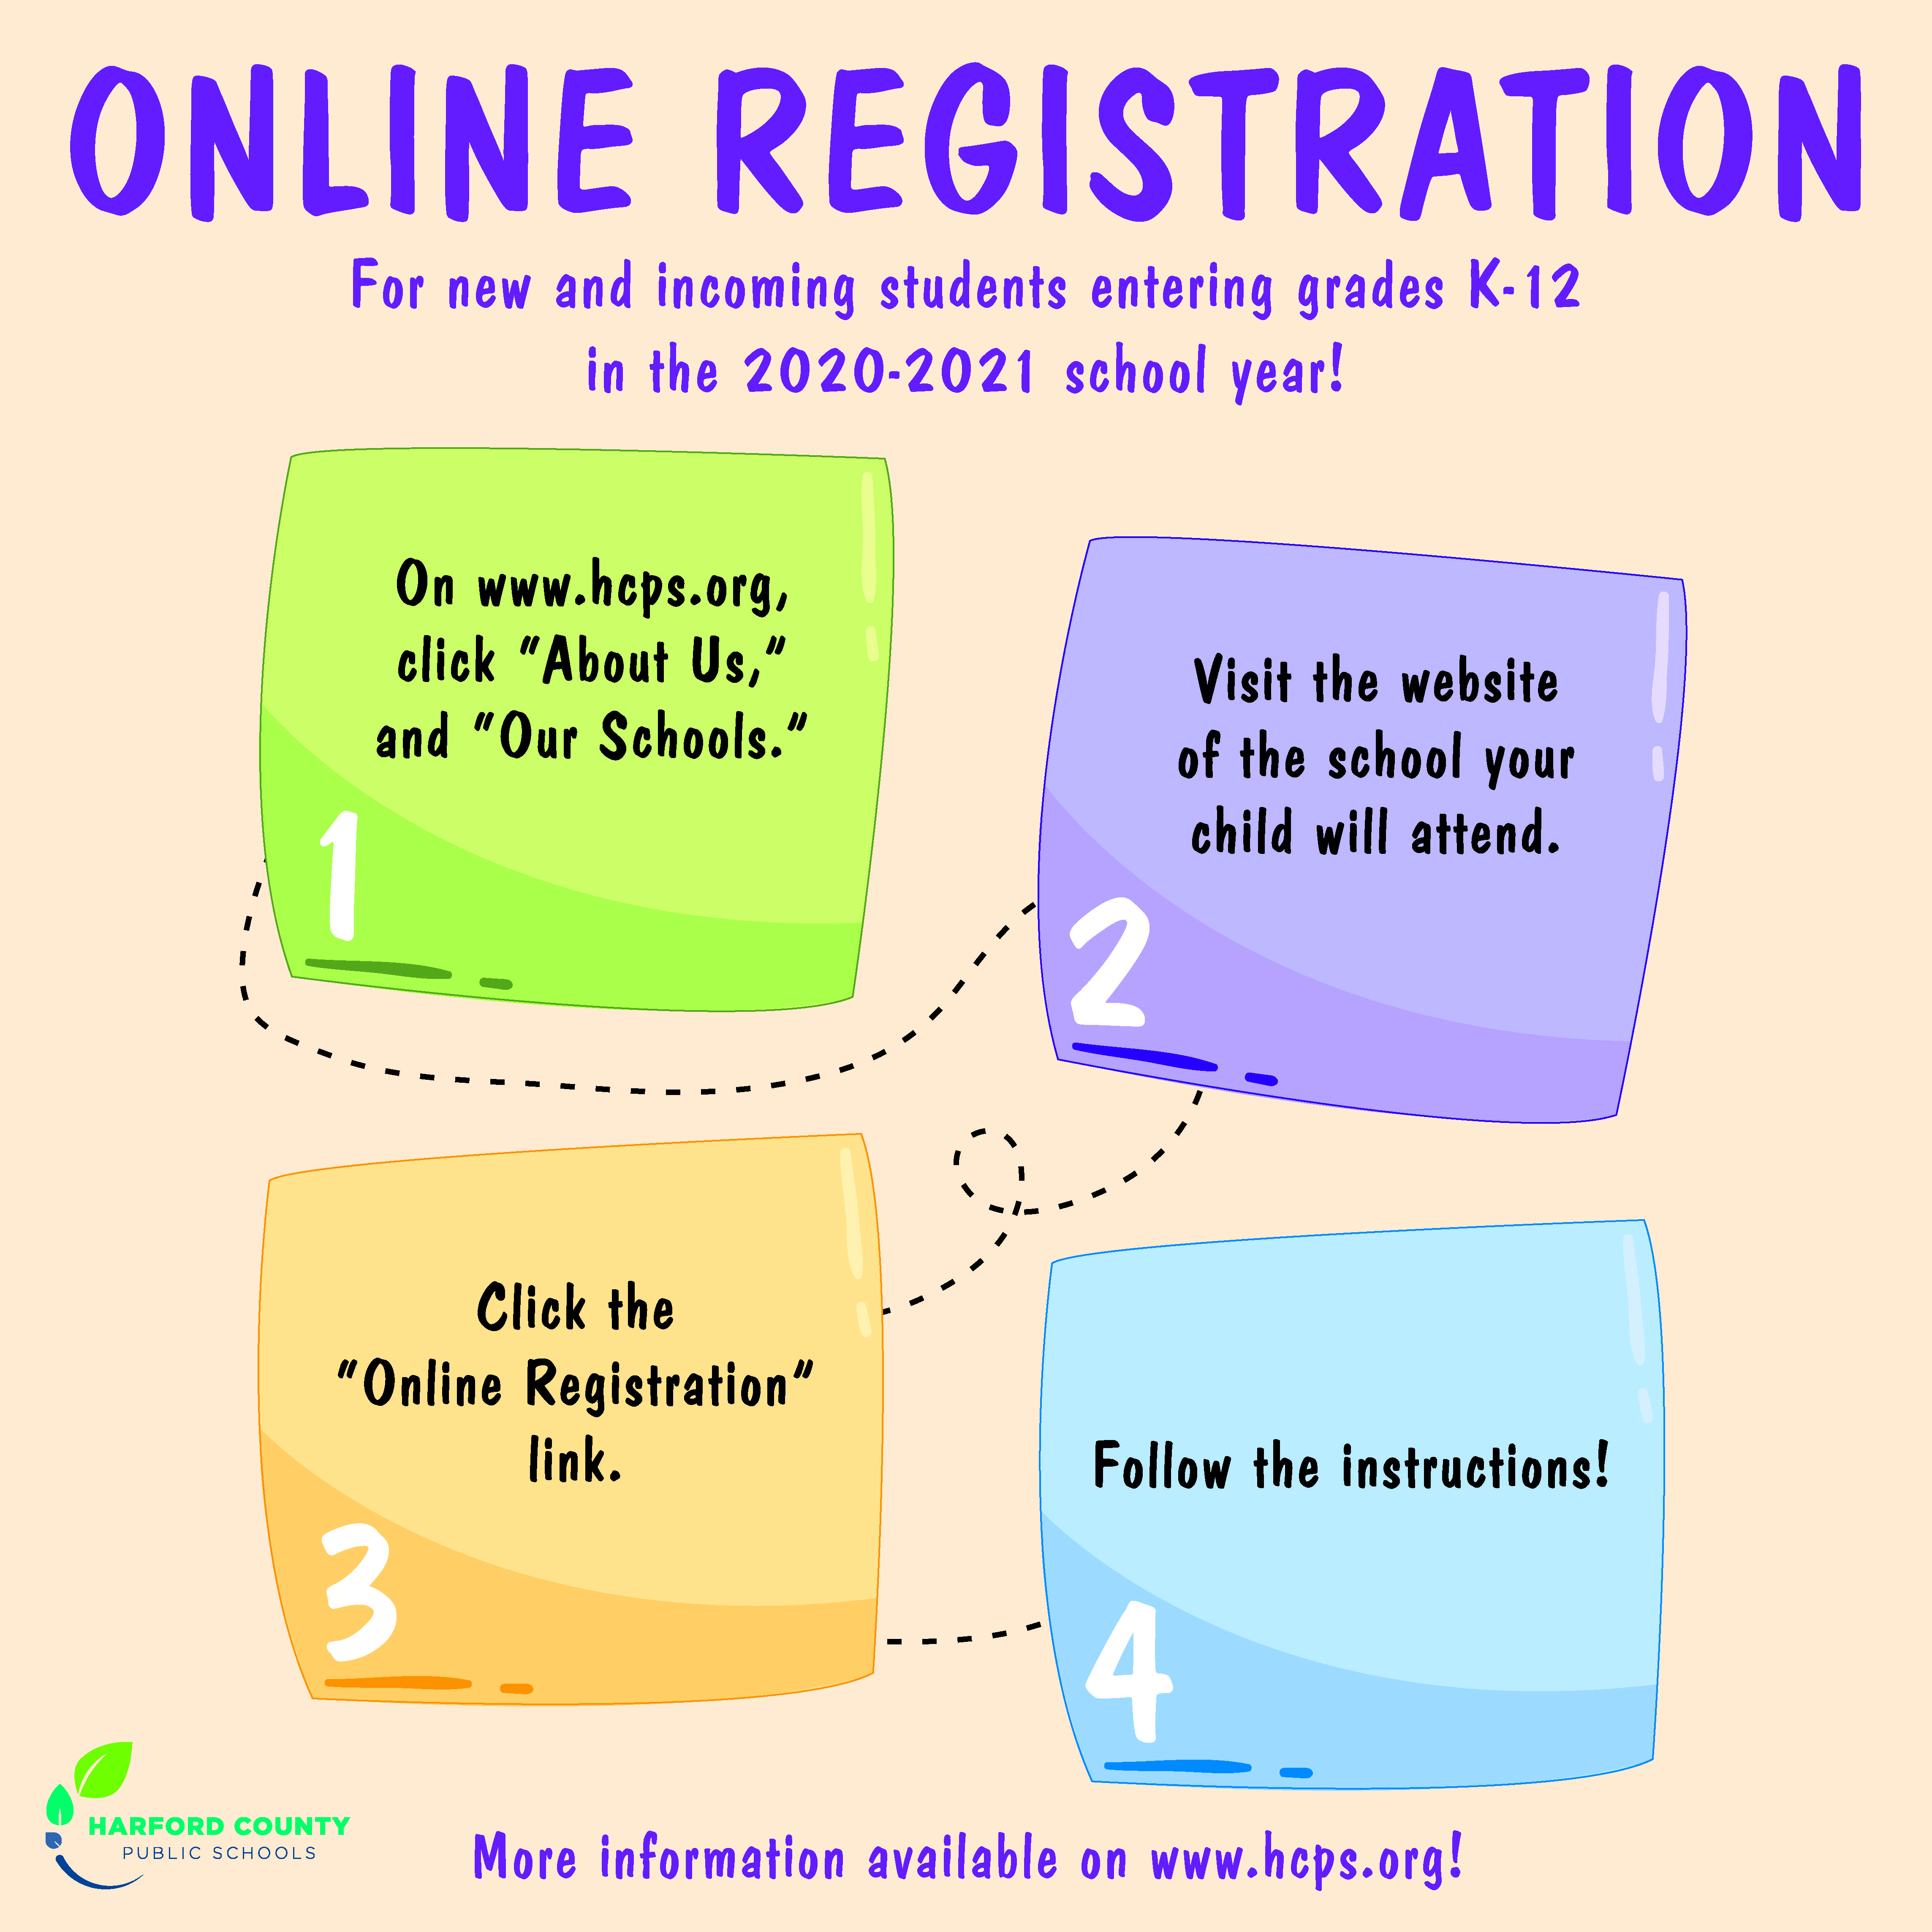 Online Registration. For new and incoming students entering grades K-12 in the 2020-2021 school year! 1. On www.hcps.org click About Us and Our Schools.  2. Visit the website of the school your child will attend.  3. Click the Online Registration link.  4. Follow the instructions.